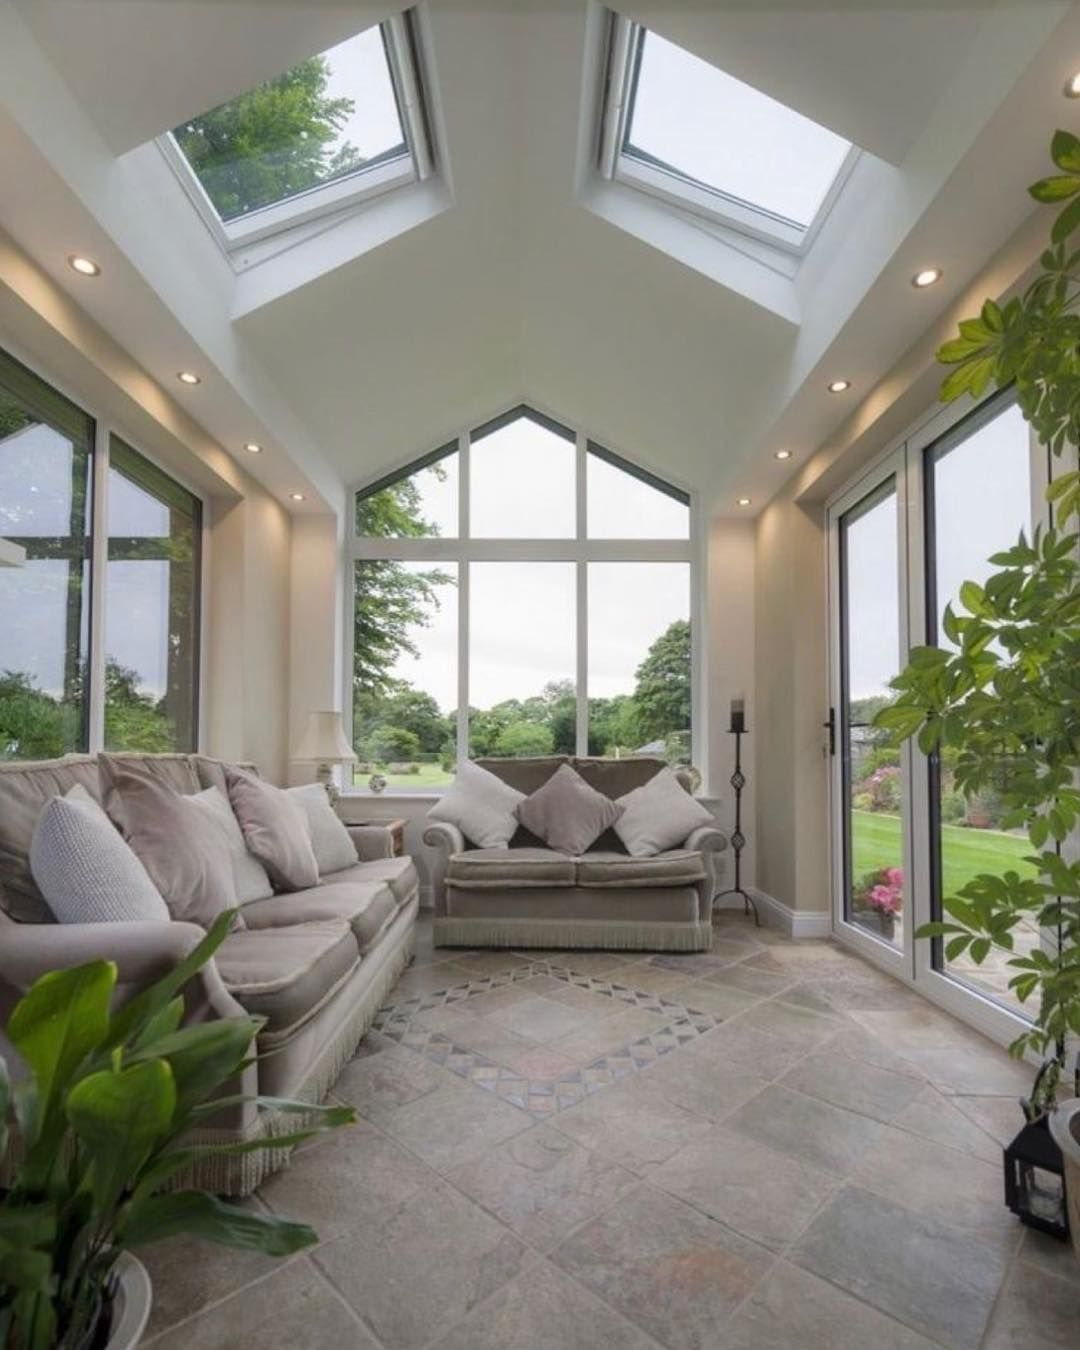 New The 10 Best Home Decor With Pictures Sunroom Design Sunroom Room Space Interiors Skylight Inter Arsitektur Arsitektur Rumah Arsitektur Modern